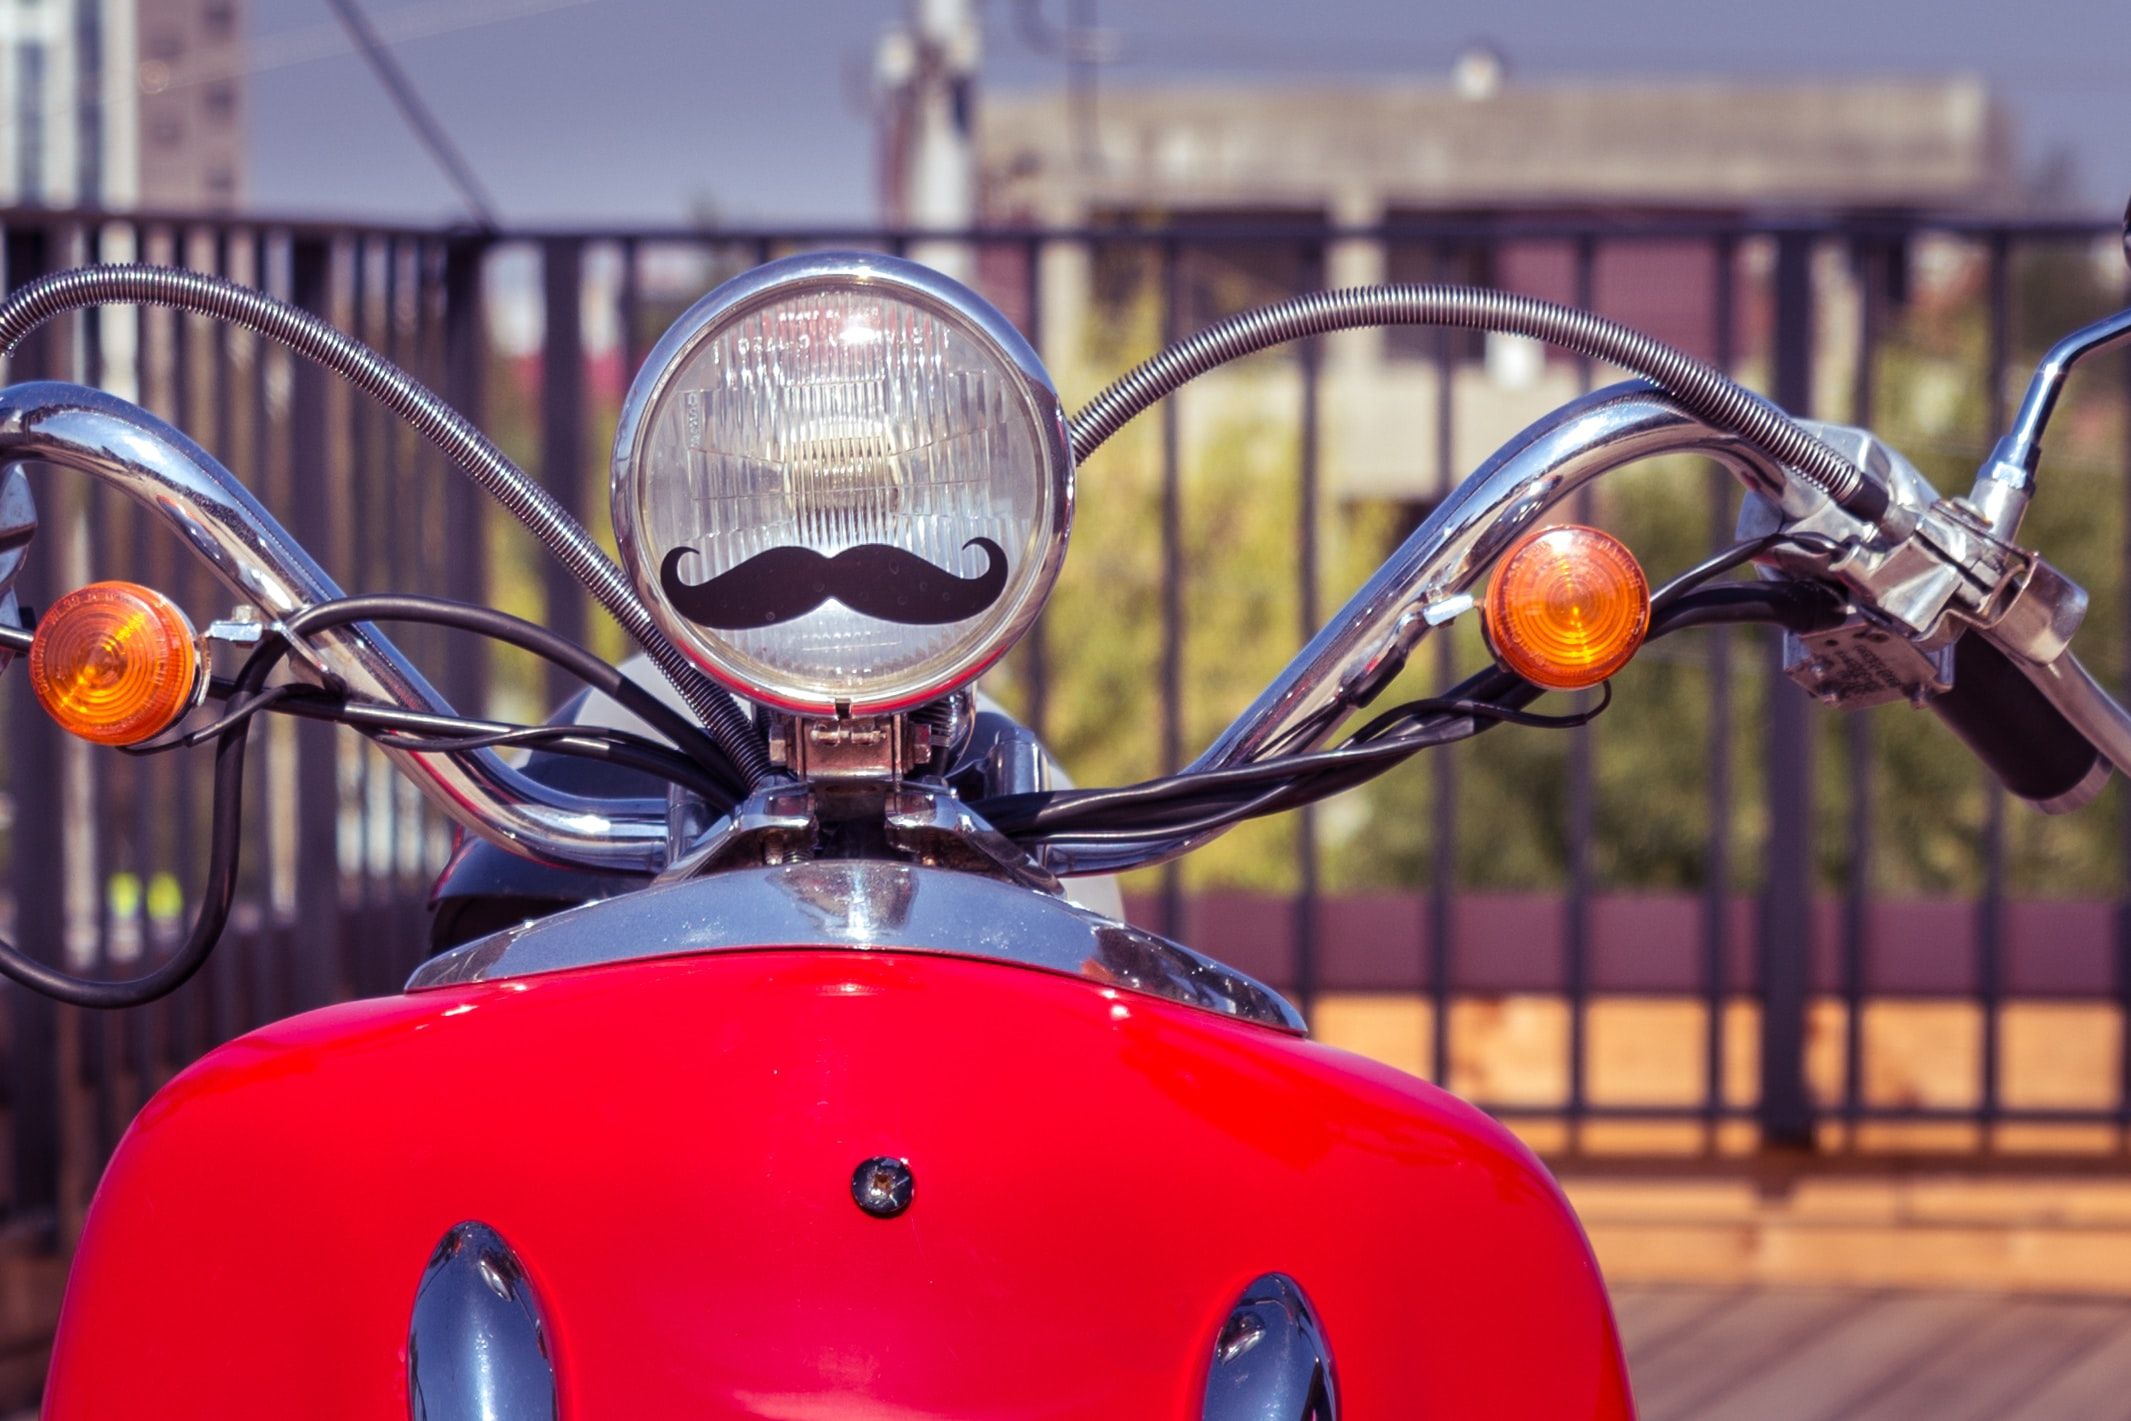 focus photography of red motorcycle